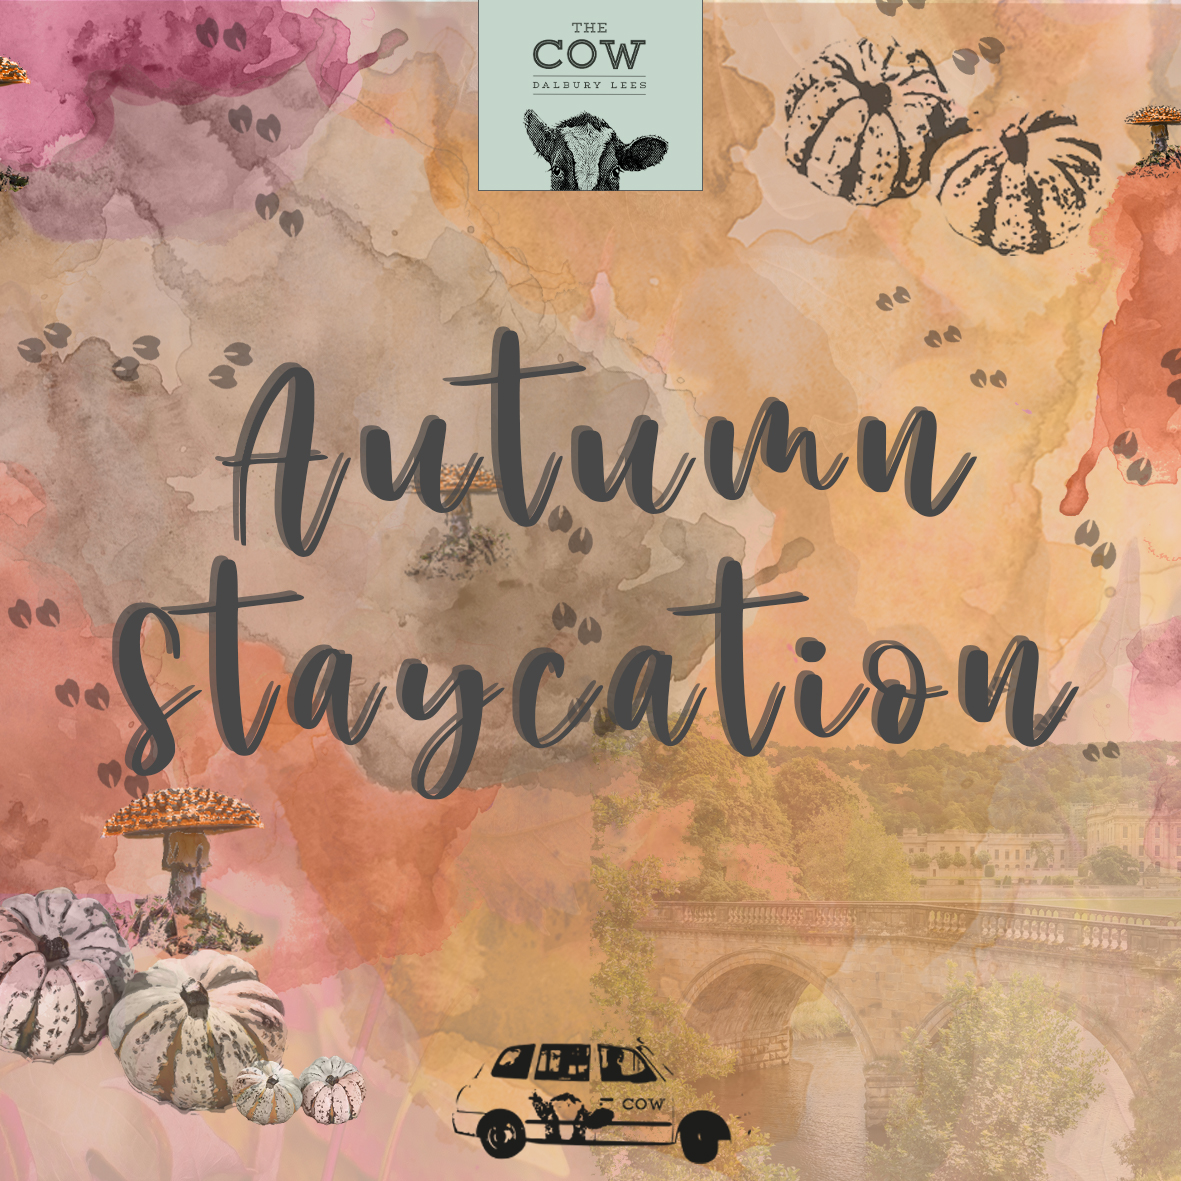 COW Autumn Staycation Website Image